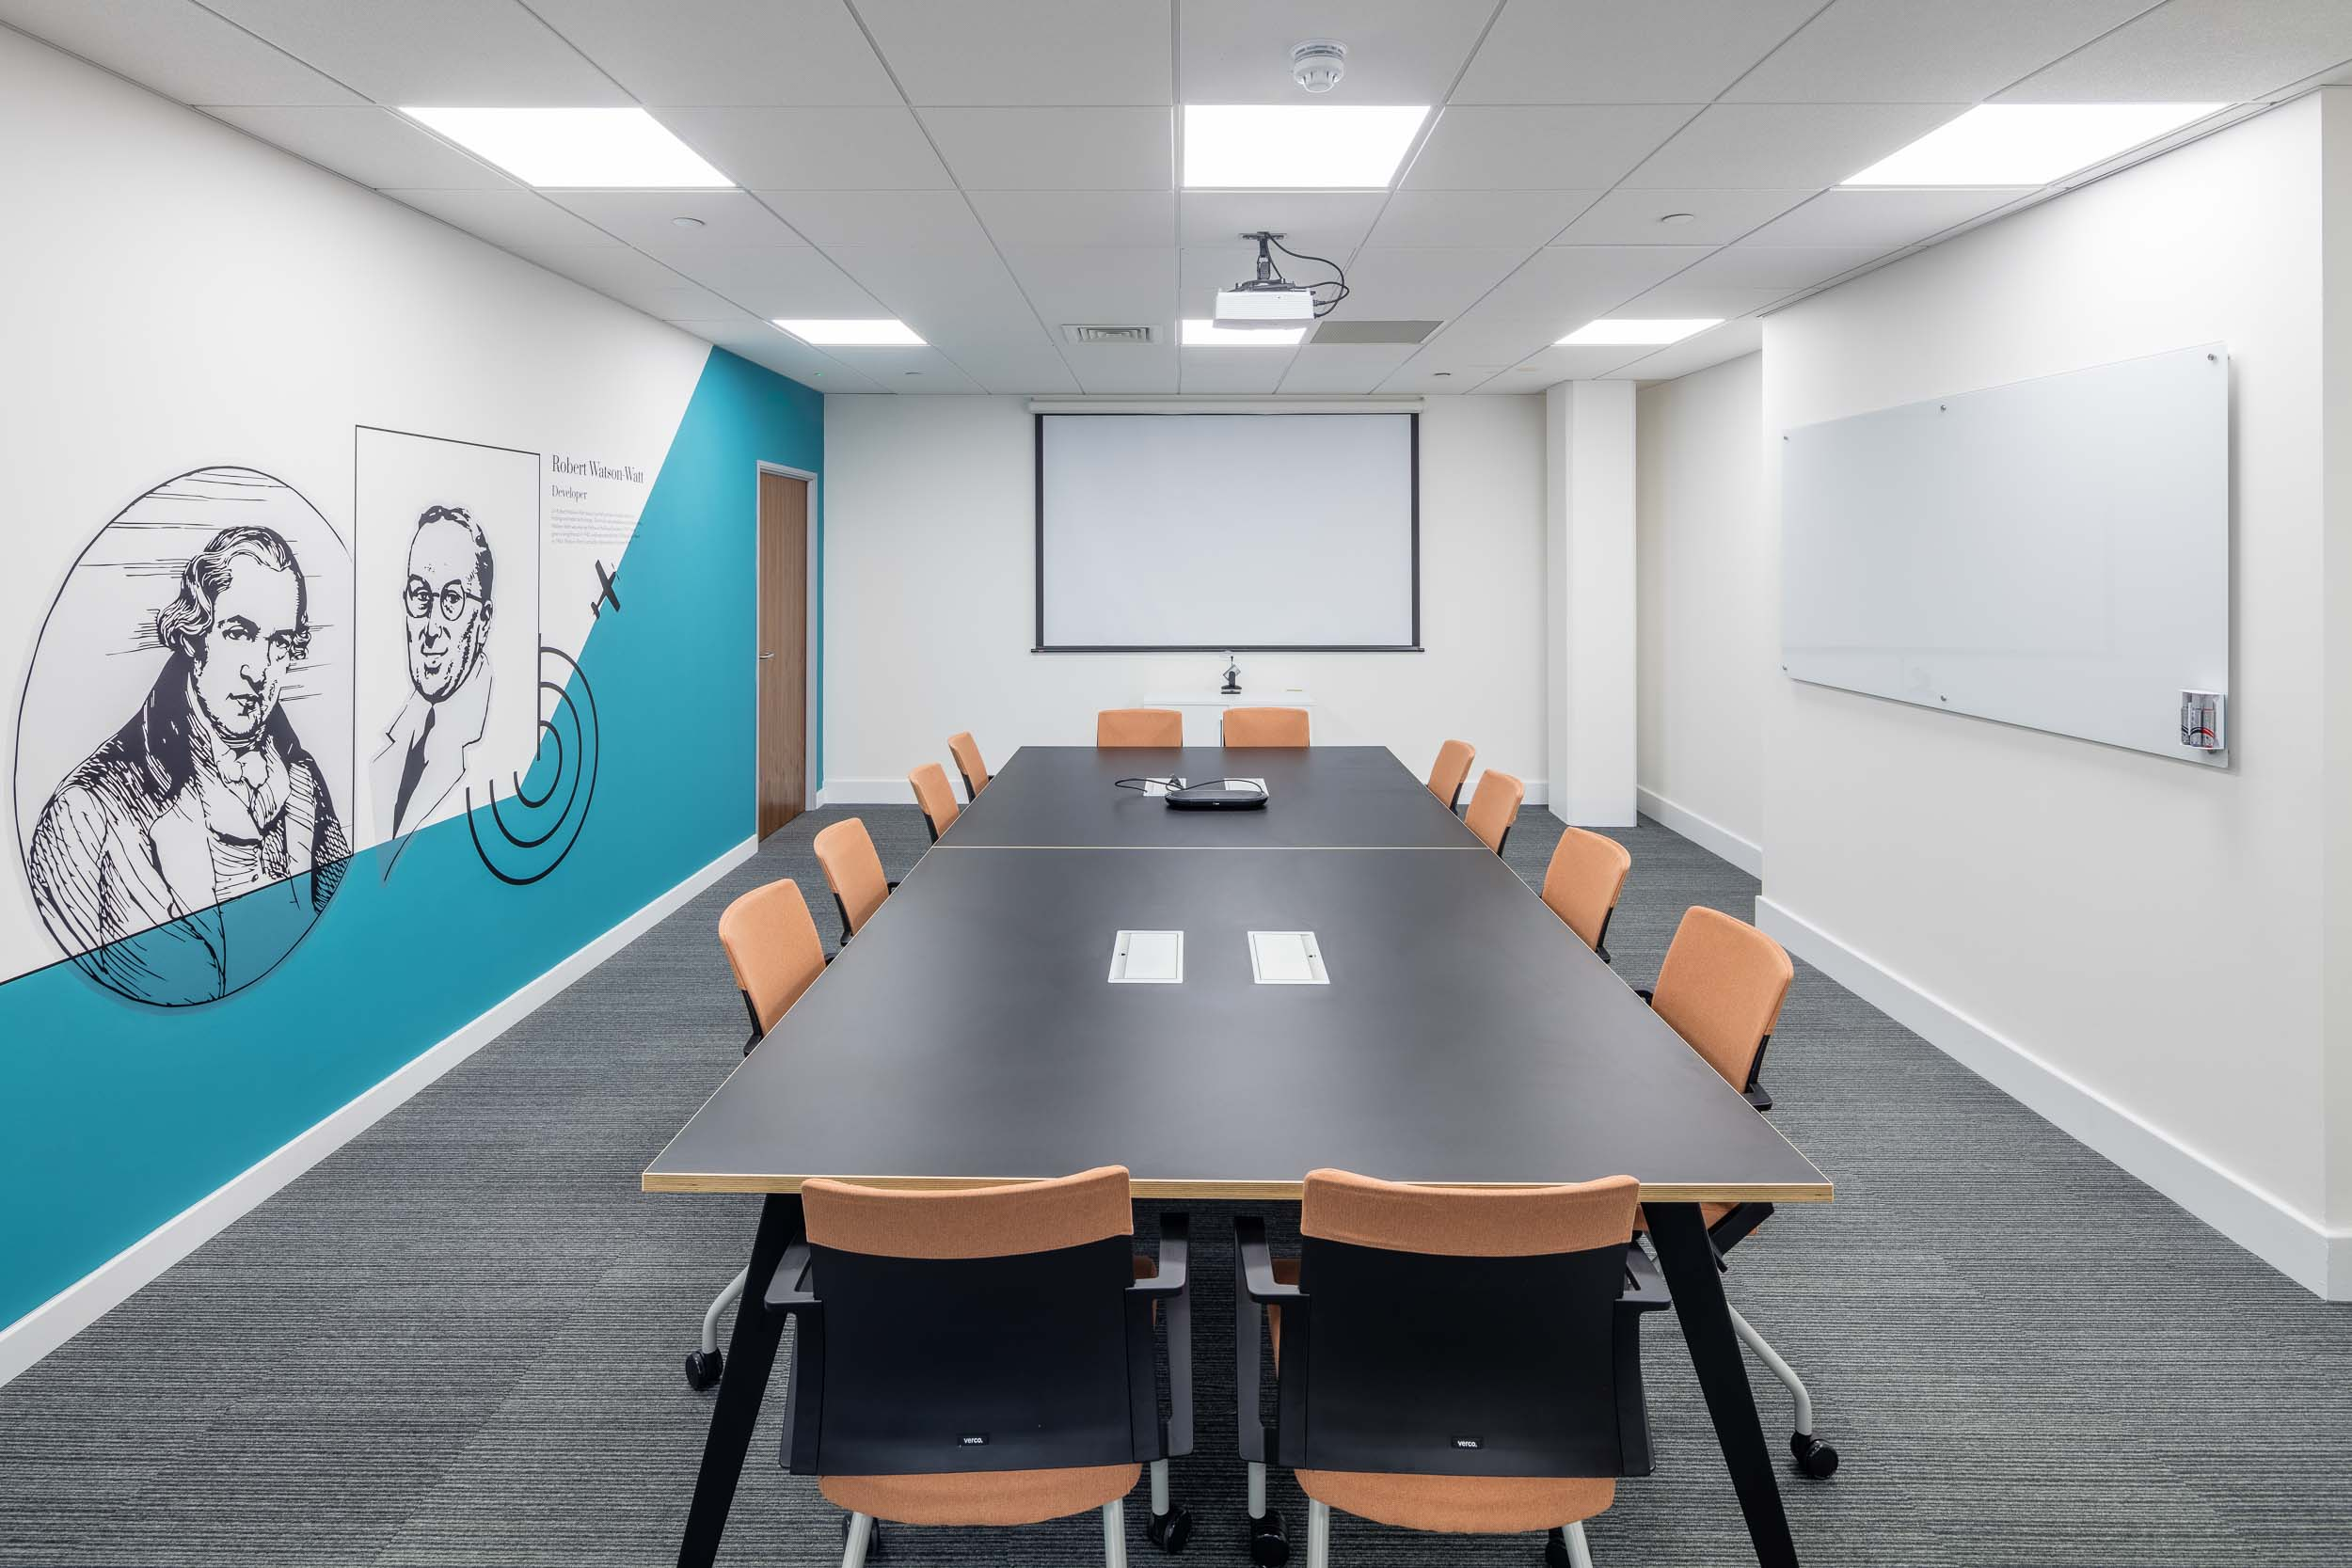 meeting room with graphics manifestation